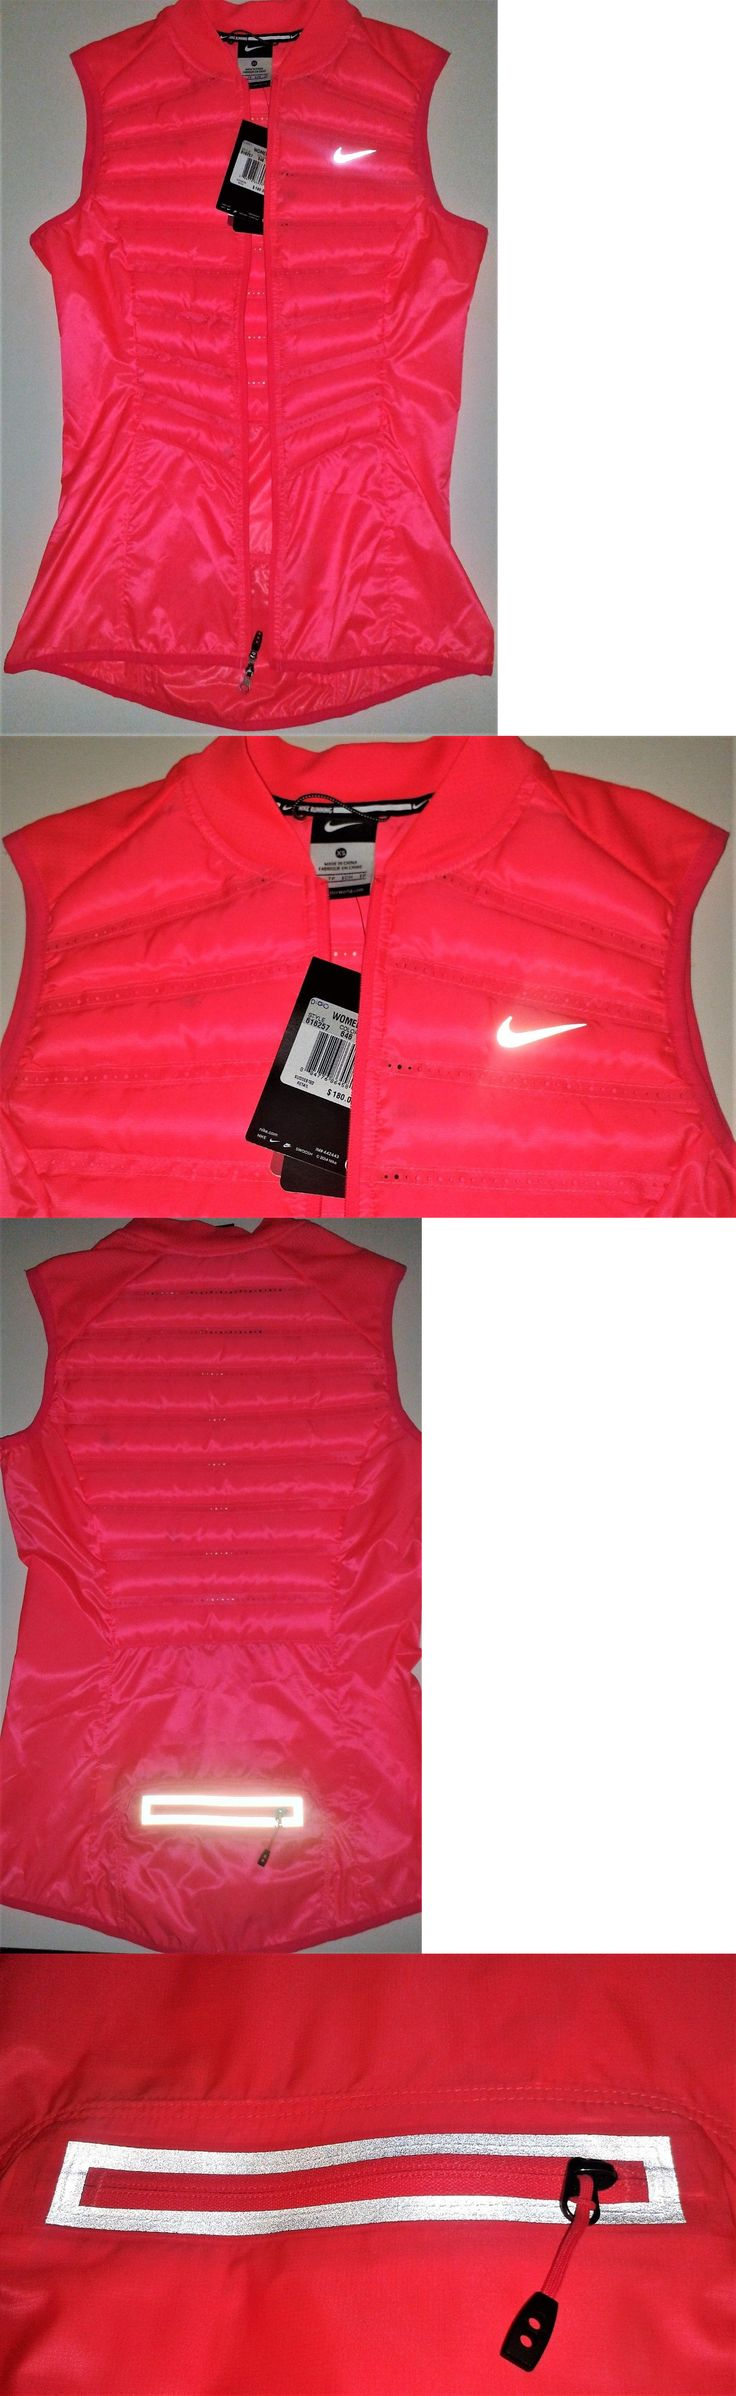 Jackets and Vests 59285: Nike Womens Aeroloft 800 Fill Down Running Vest Size Xs Hyper Punch Neon Pink -> BUY IT NOW ONLY: $70.44 on eBay!